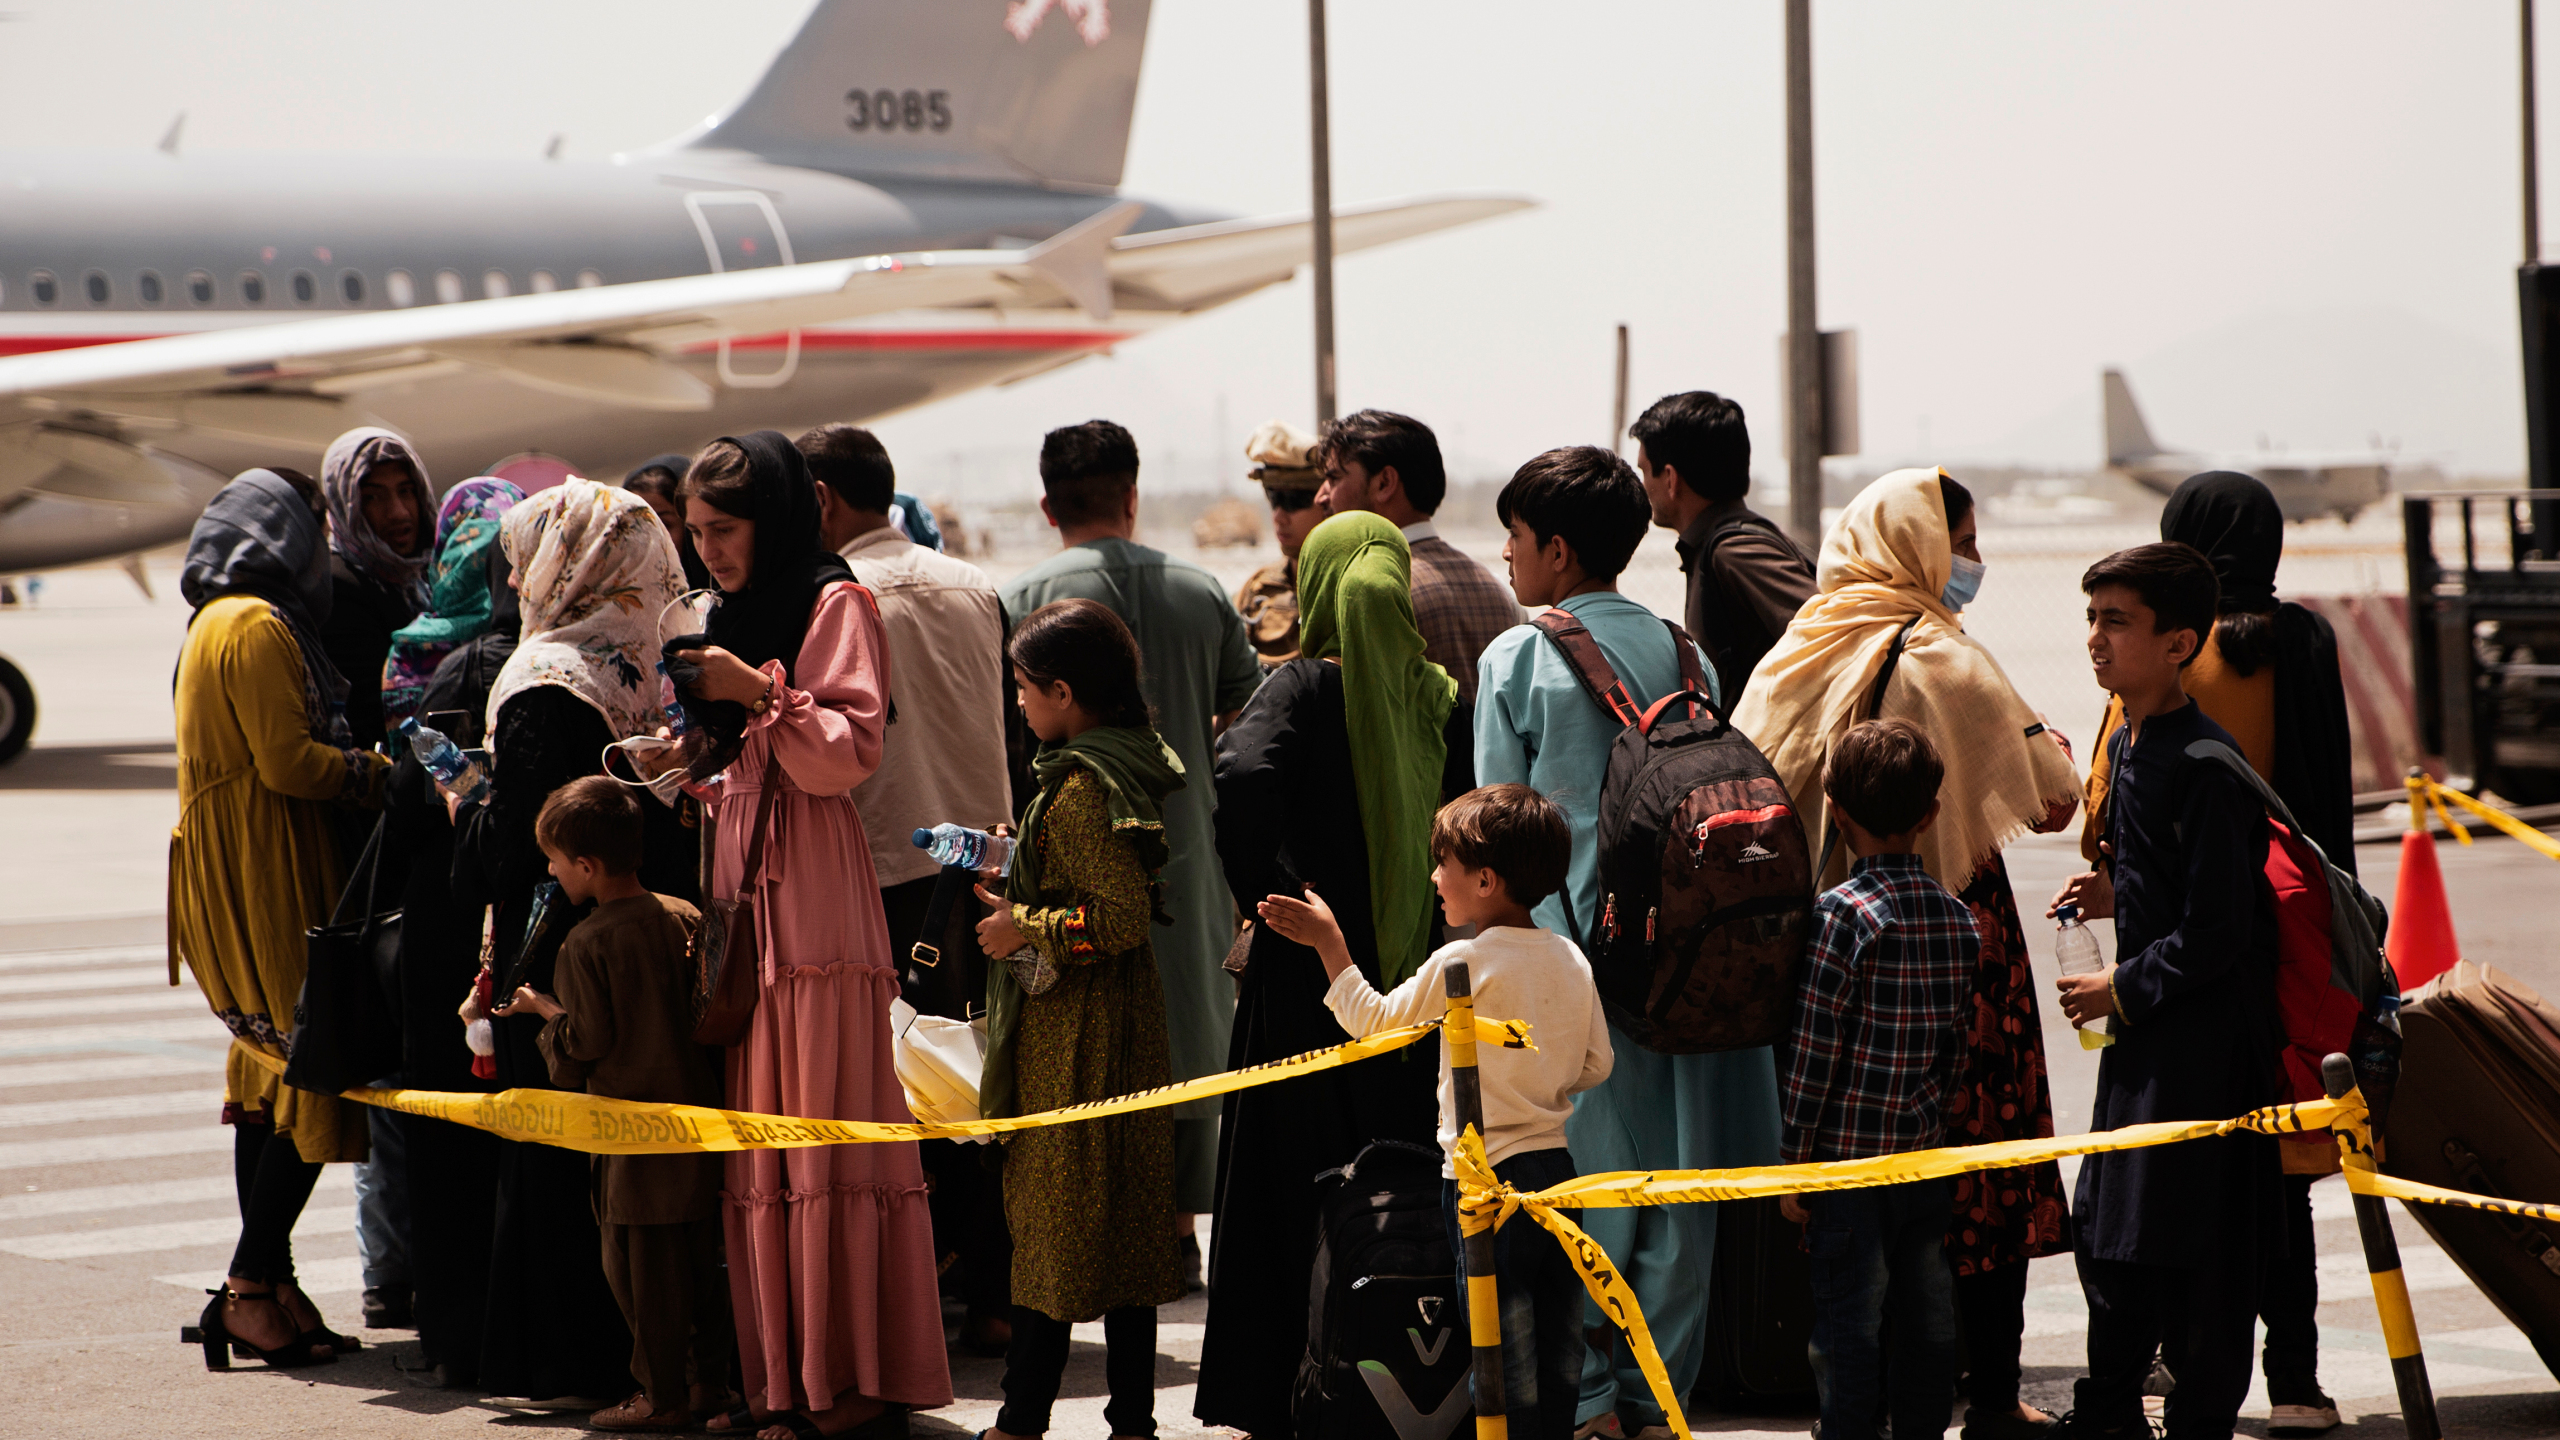 Qatar evacuates more than 300 female students and 200 media professionals from Afghanistan